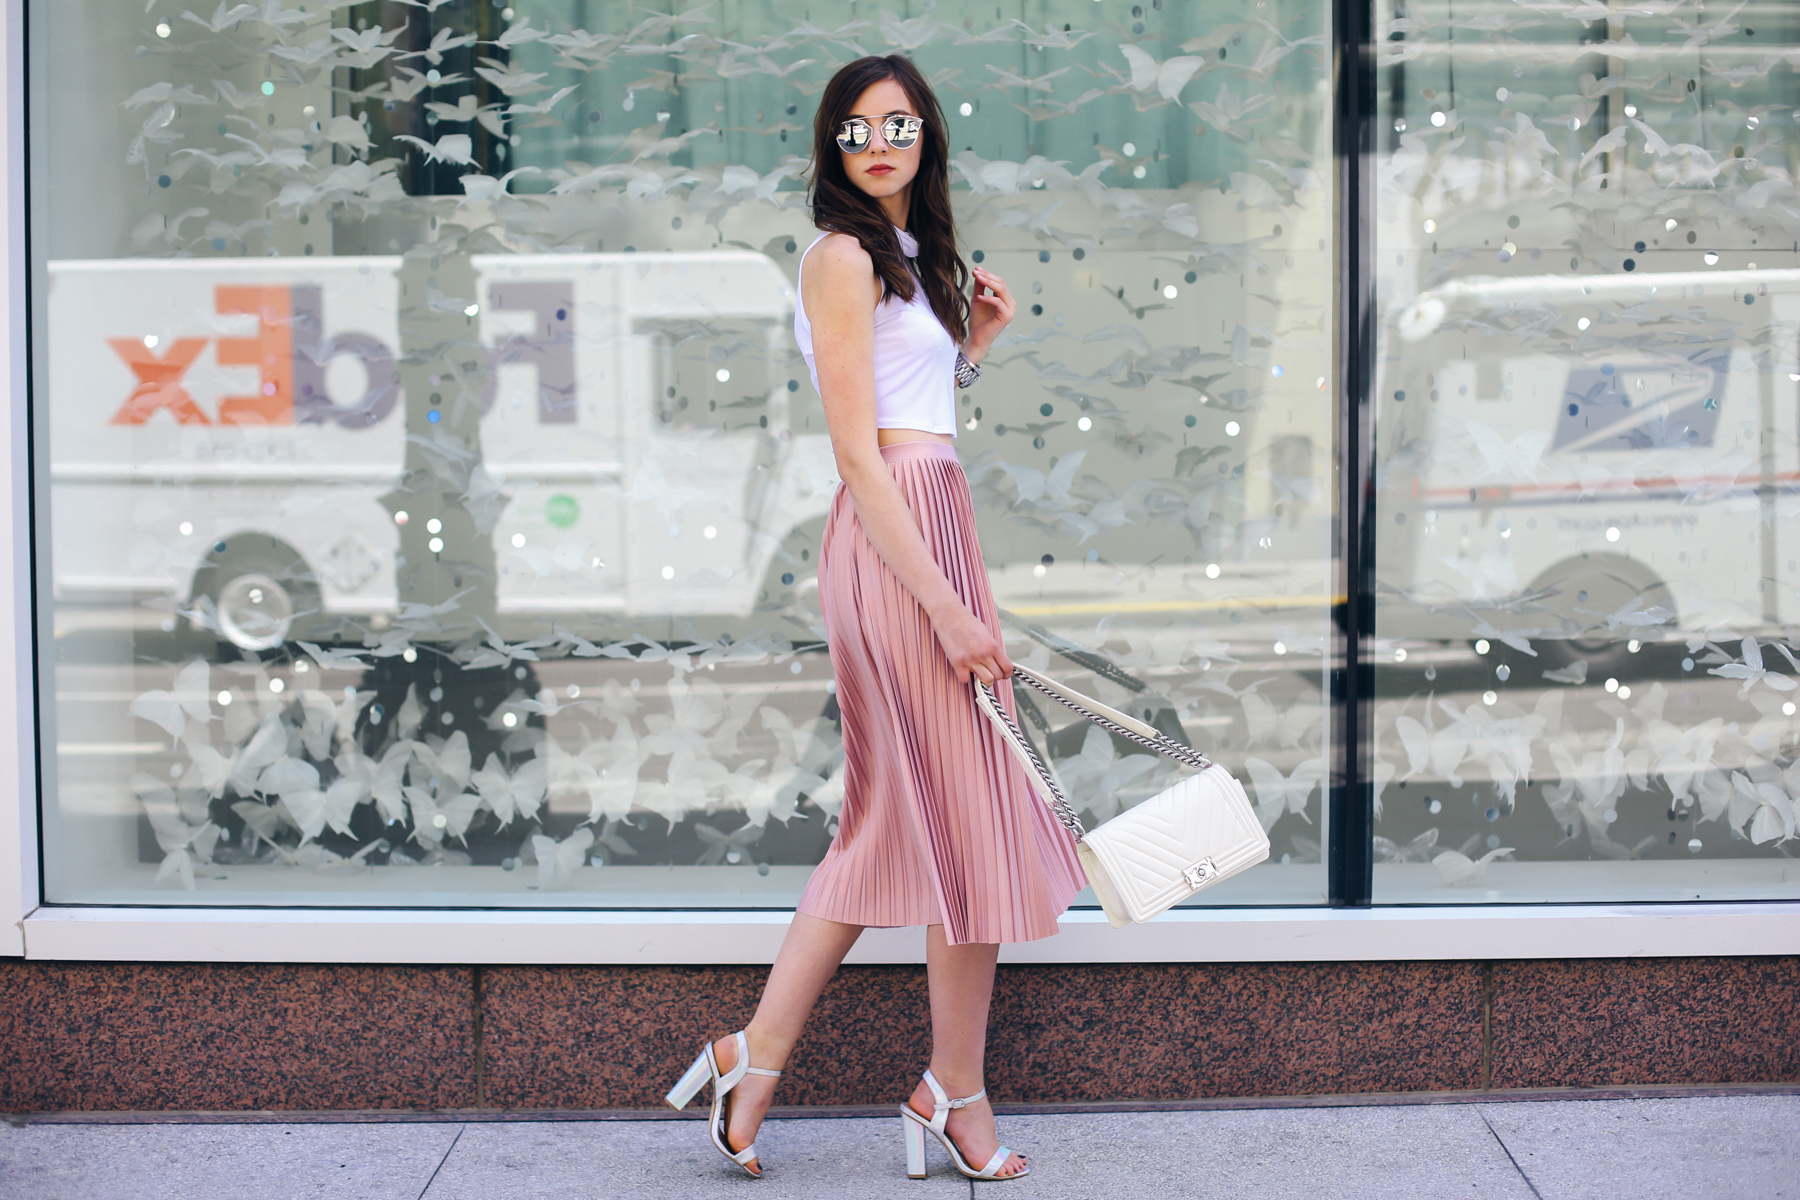 Barbora-Ondracova-FashioninmySoul-Fashion-Blogger-Photography-RyanbyRyanChua-7656